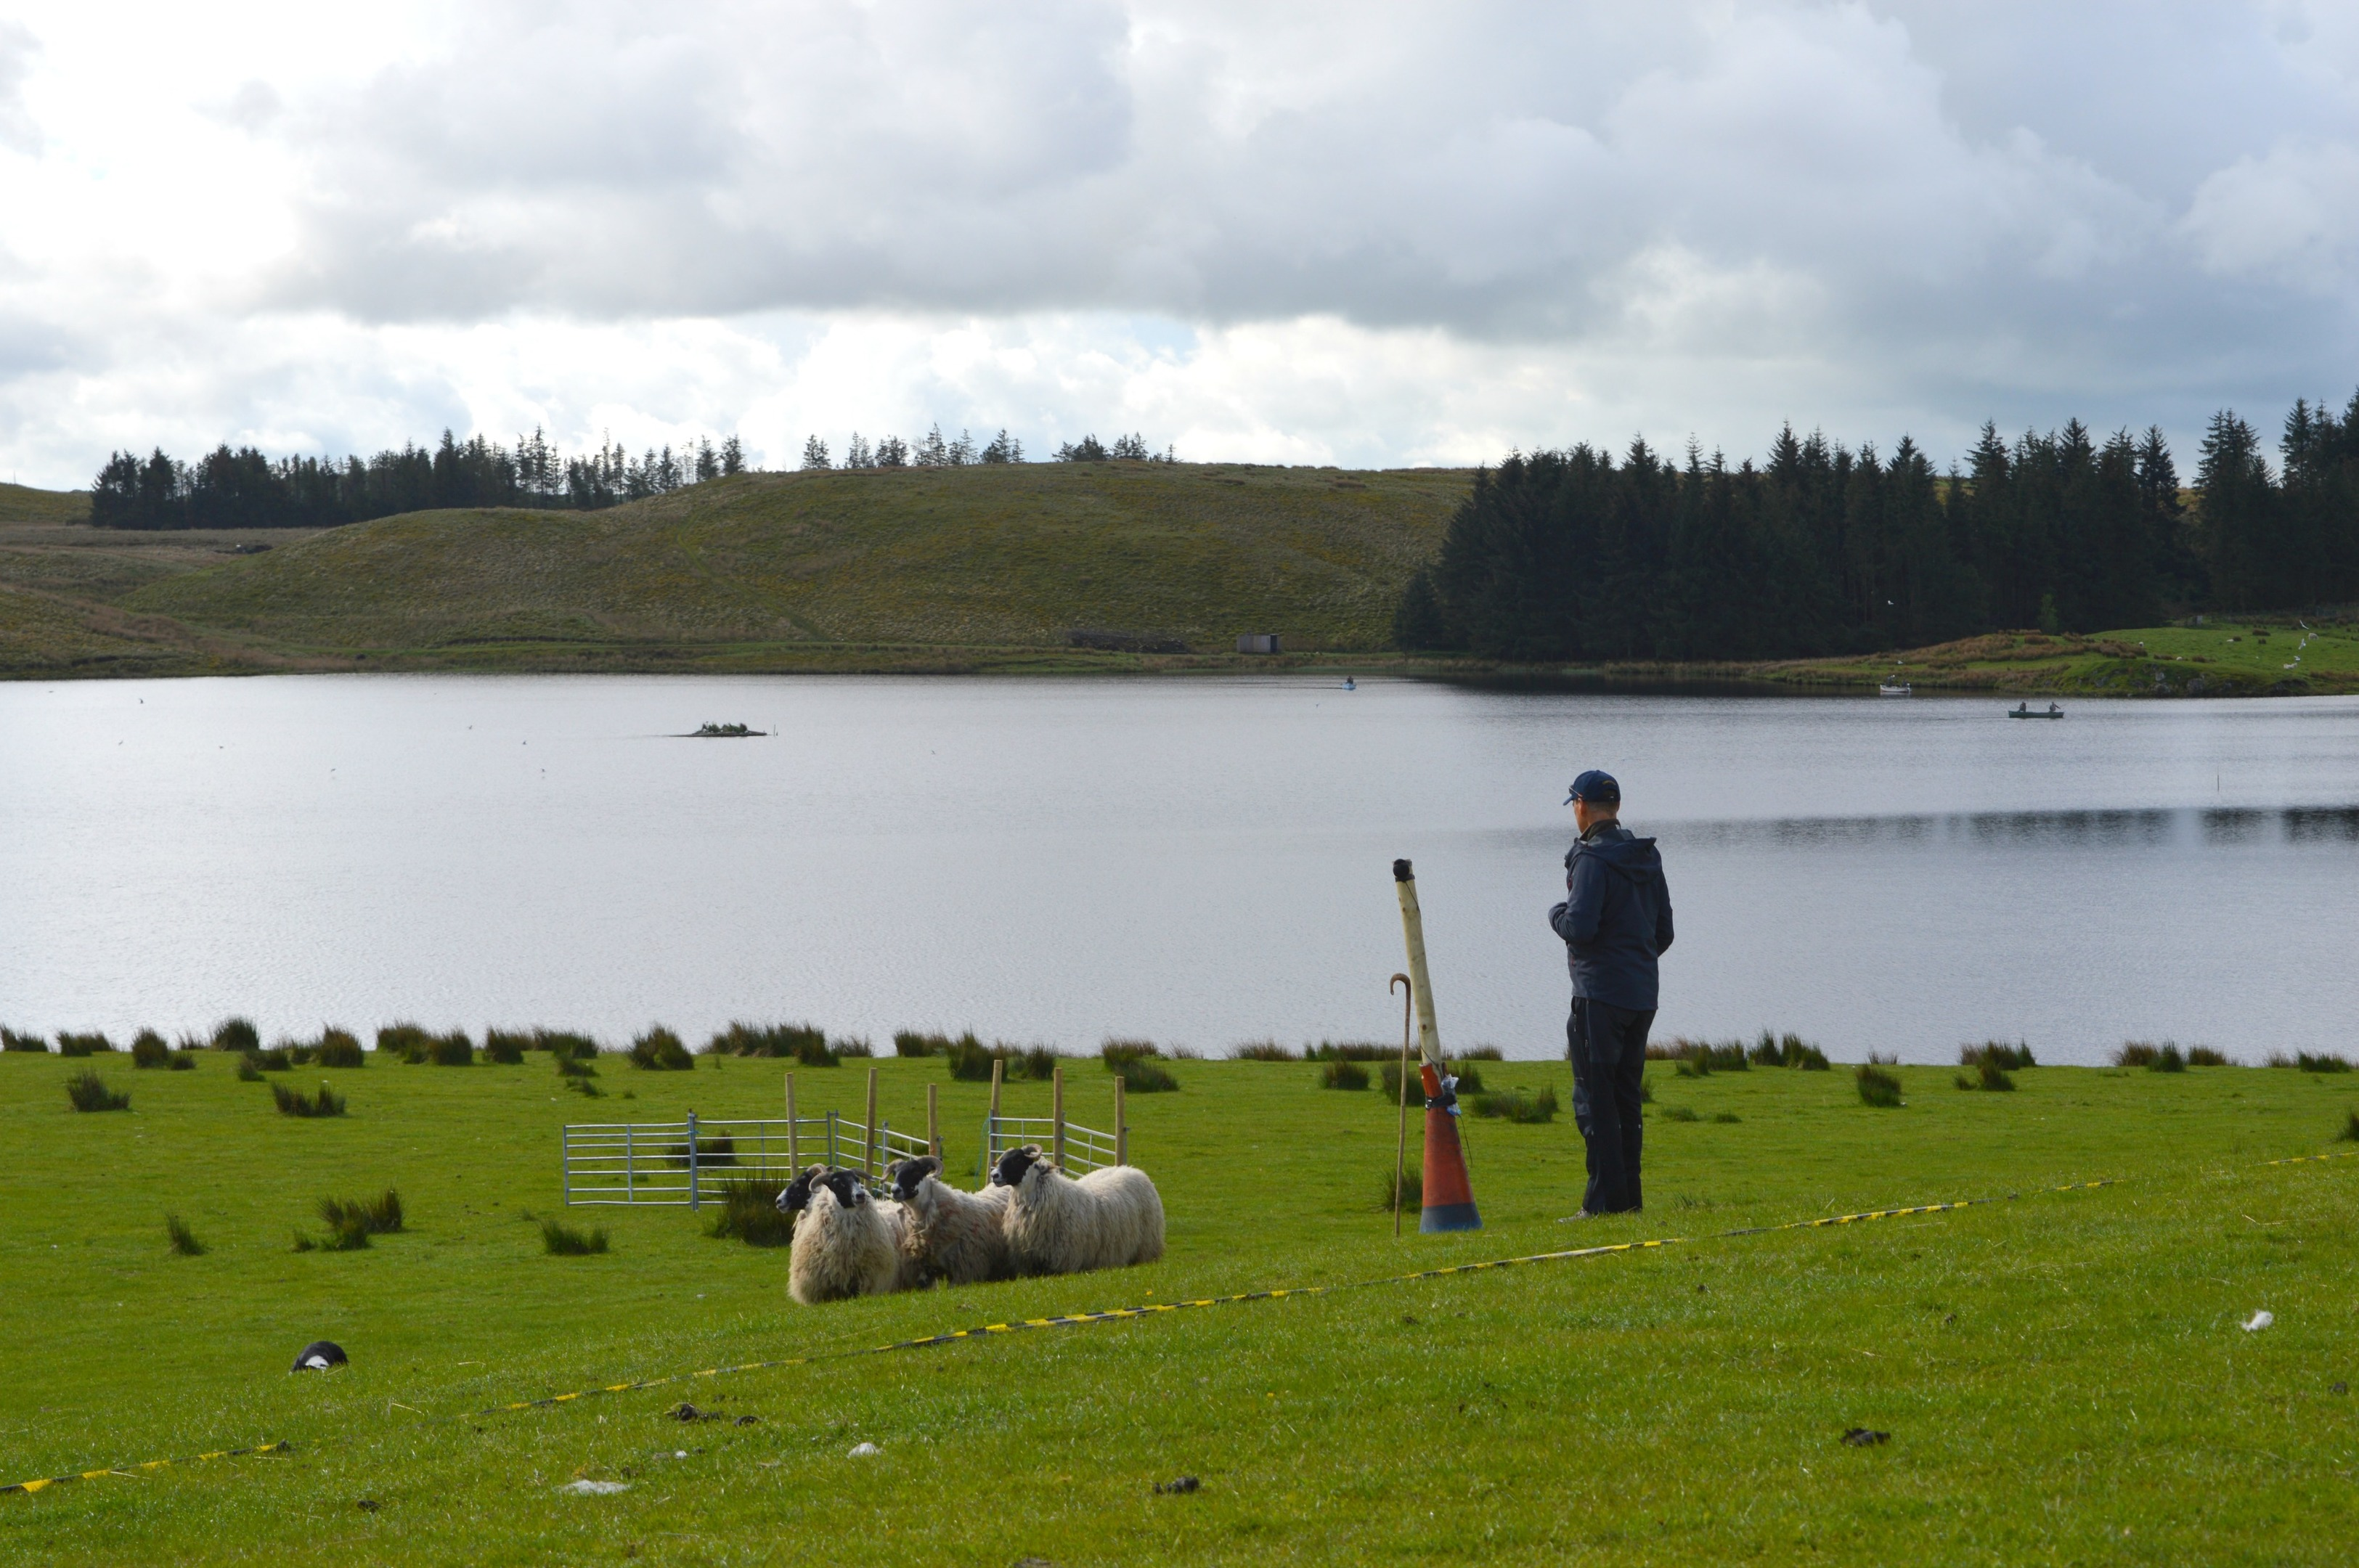 The programme will show trials in Blairgowrie, Harelaw, Stranraer and Cardigan Bay